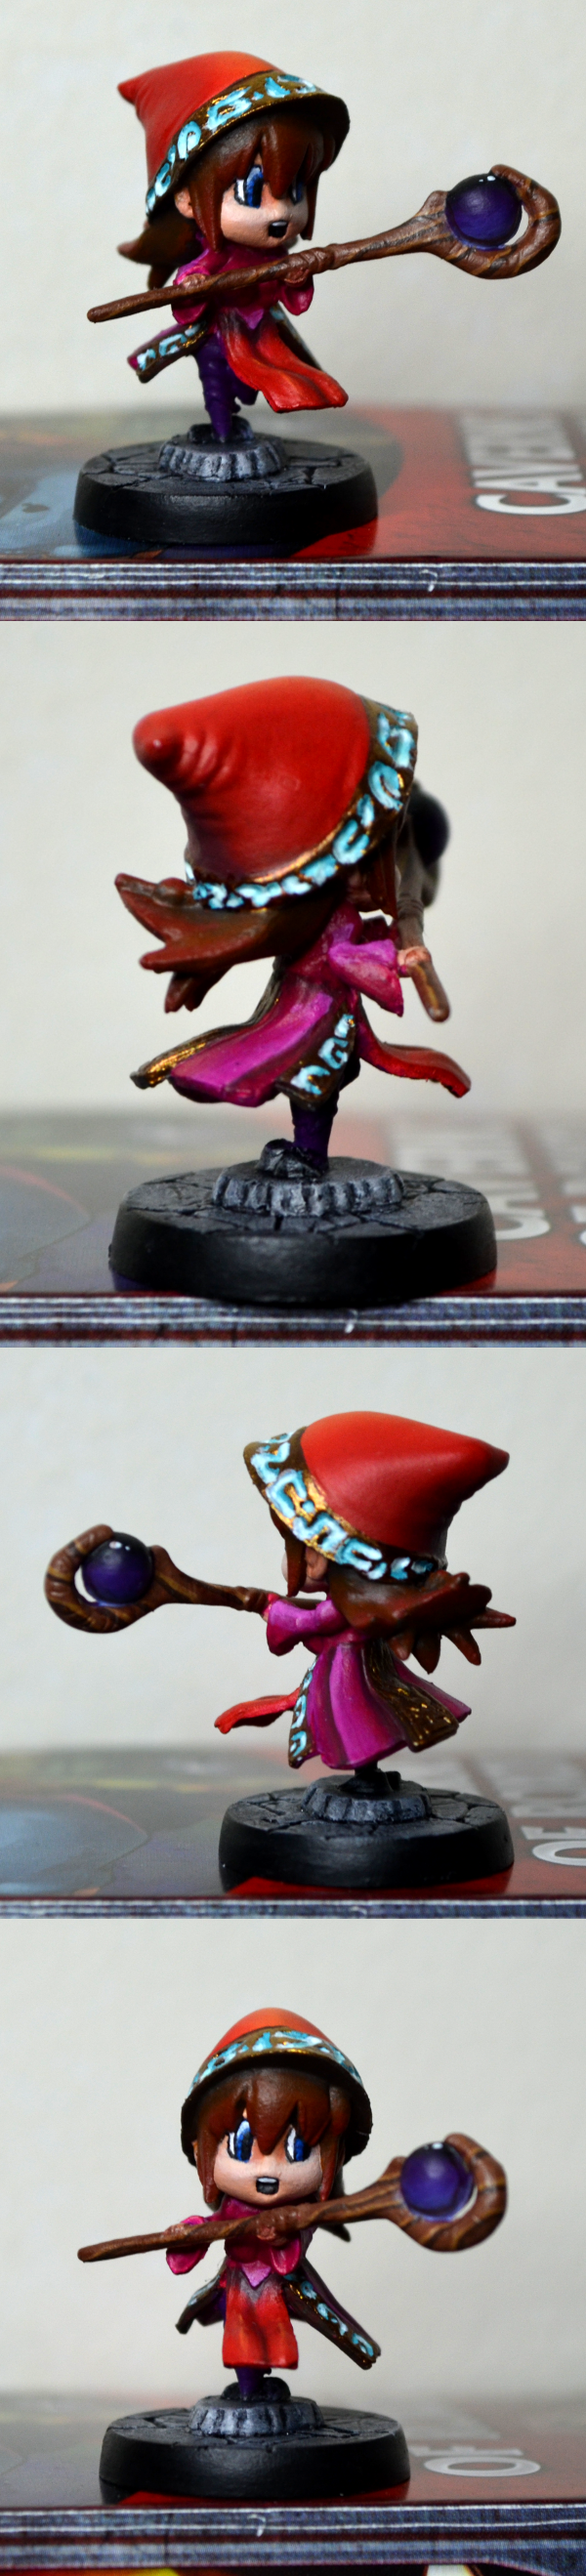 Ember_Mage_Collage